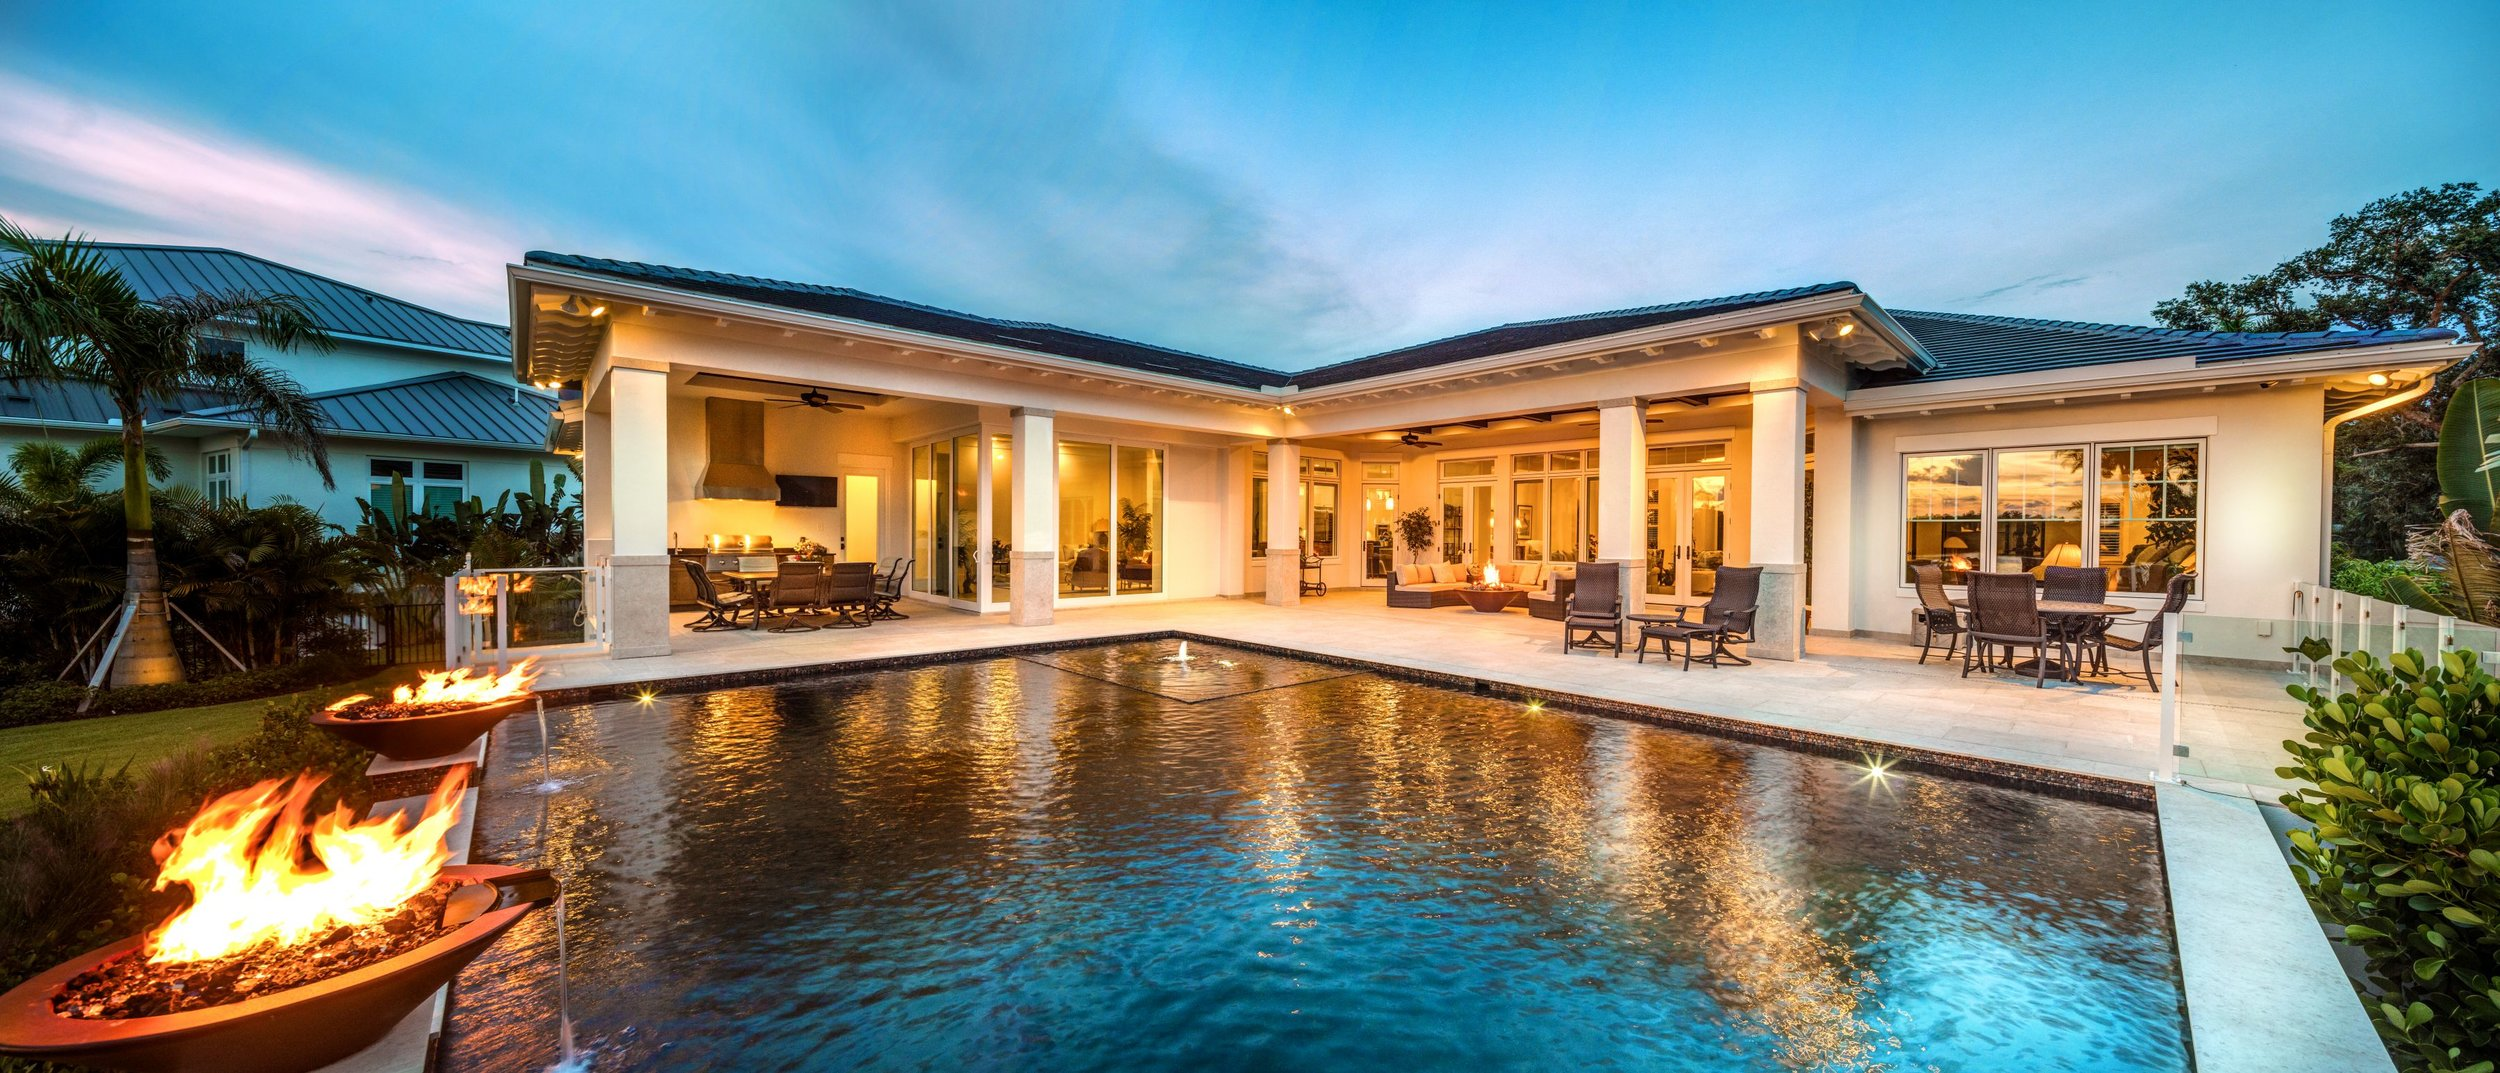 Sarasota Custom Home Builder Outdoor Living Pool Fire Bowl